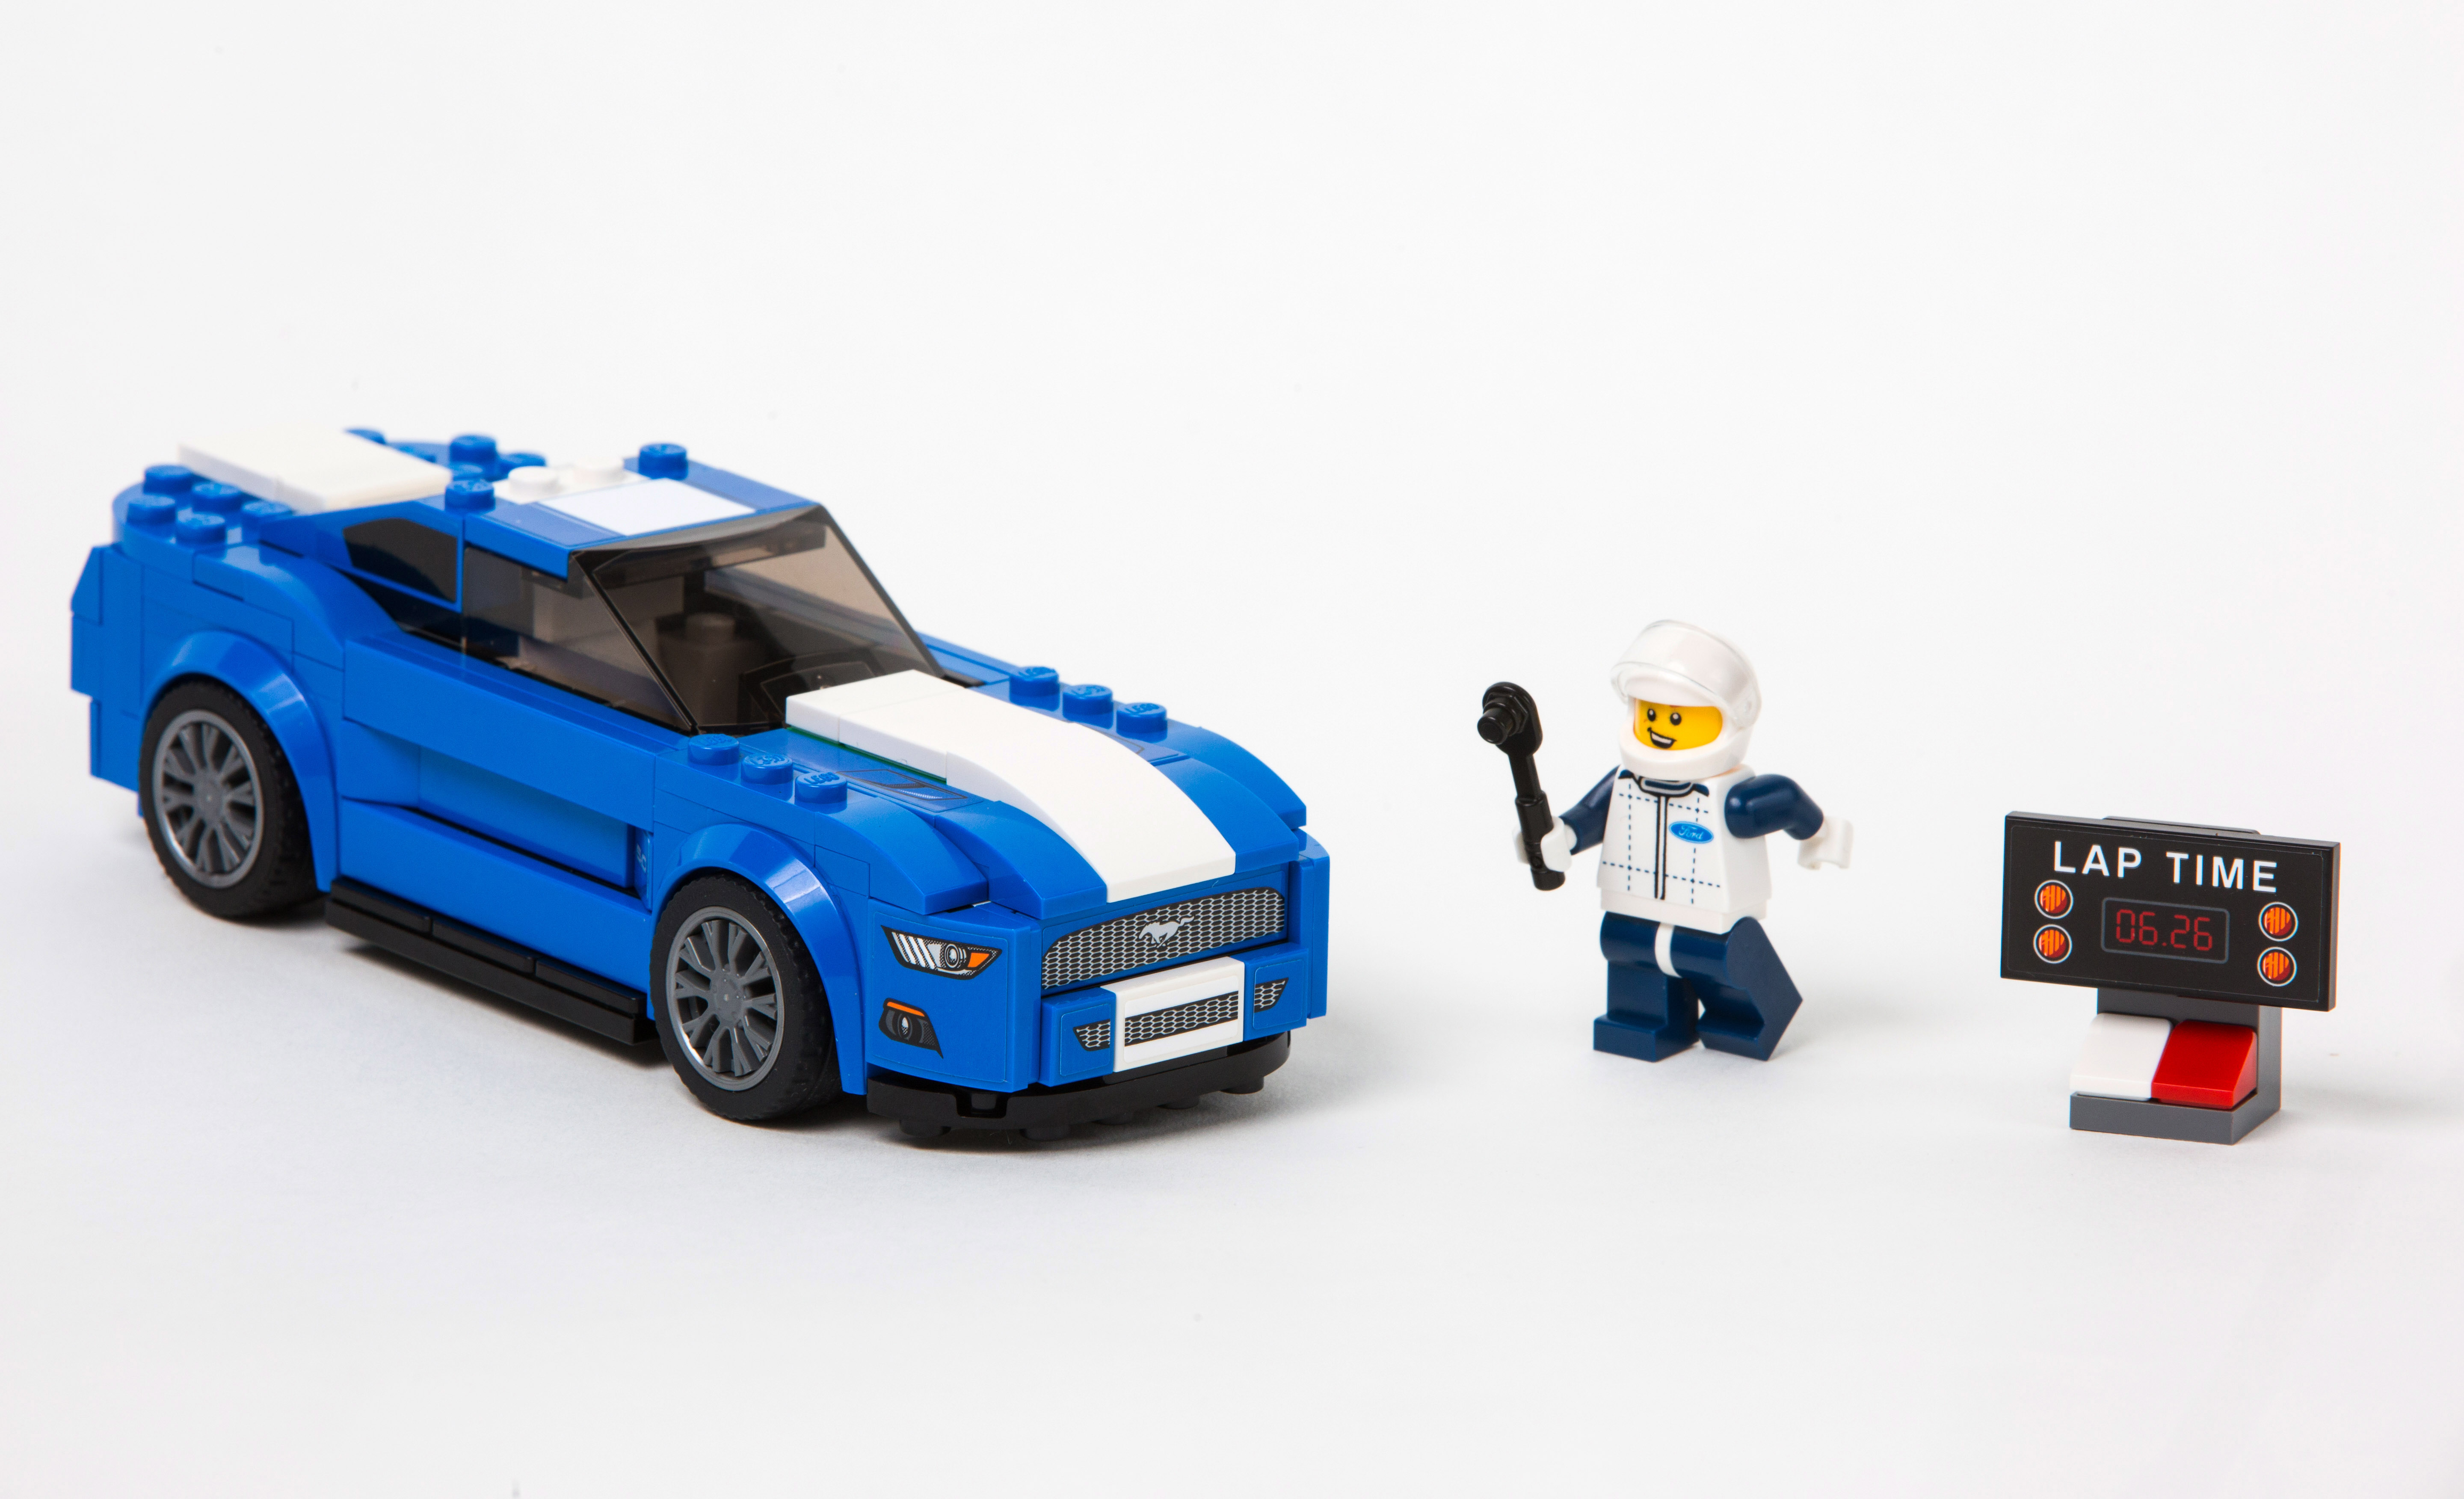 Ford Mustang - Lego